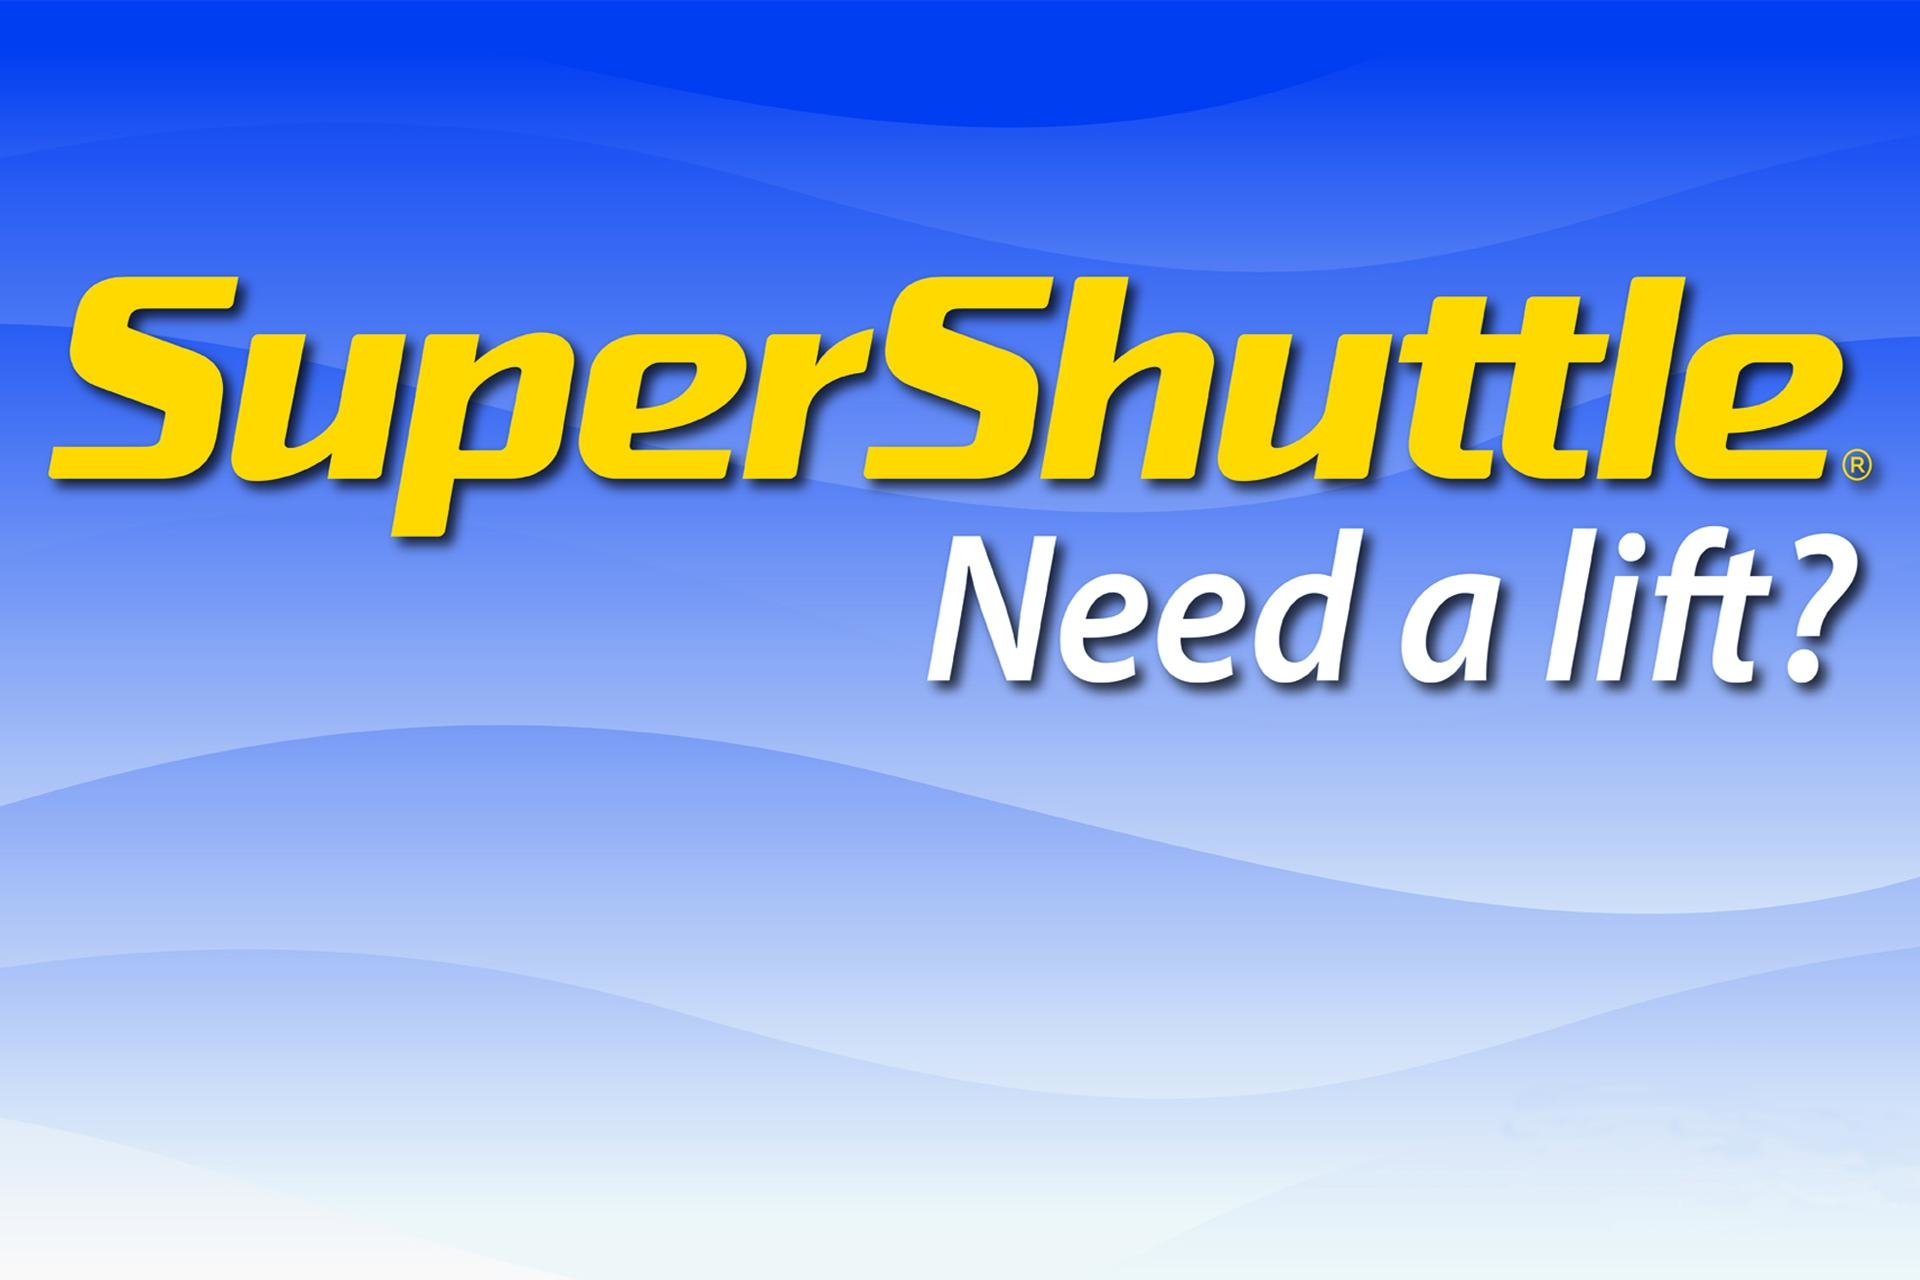 Supershuttle coupon code